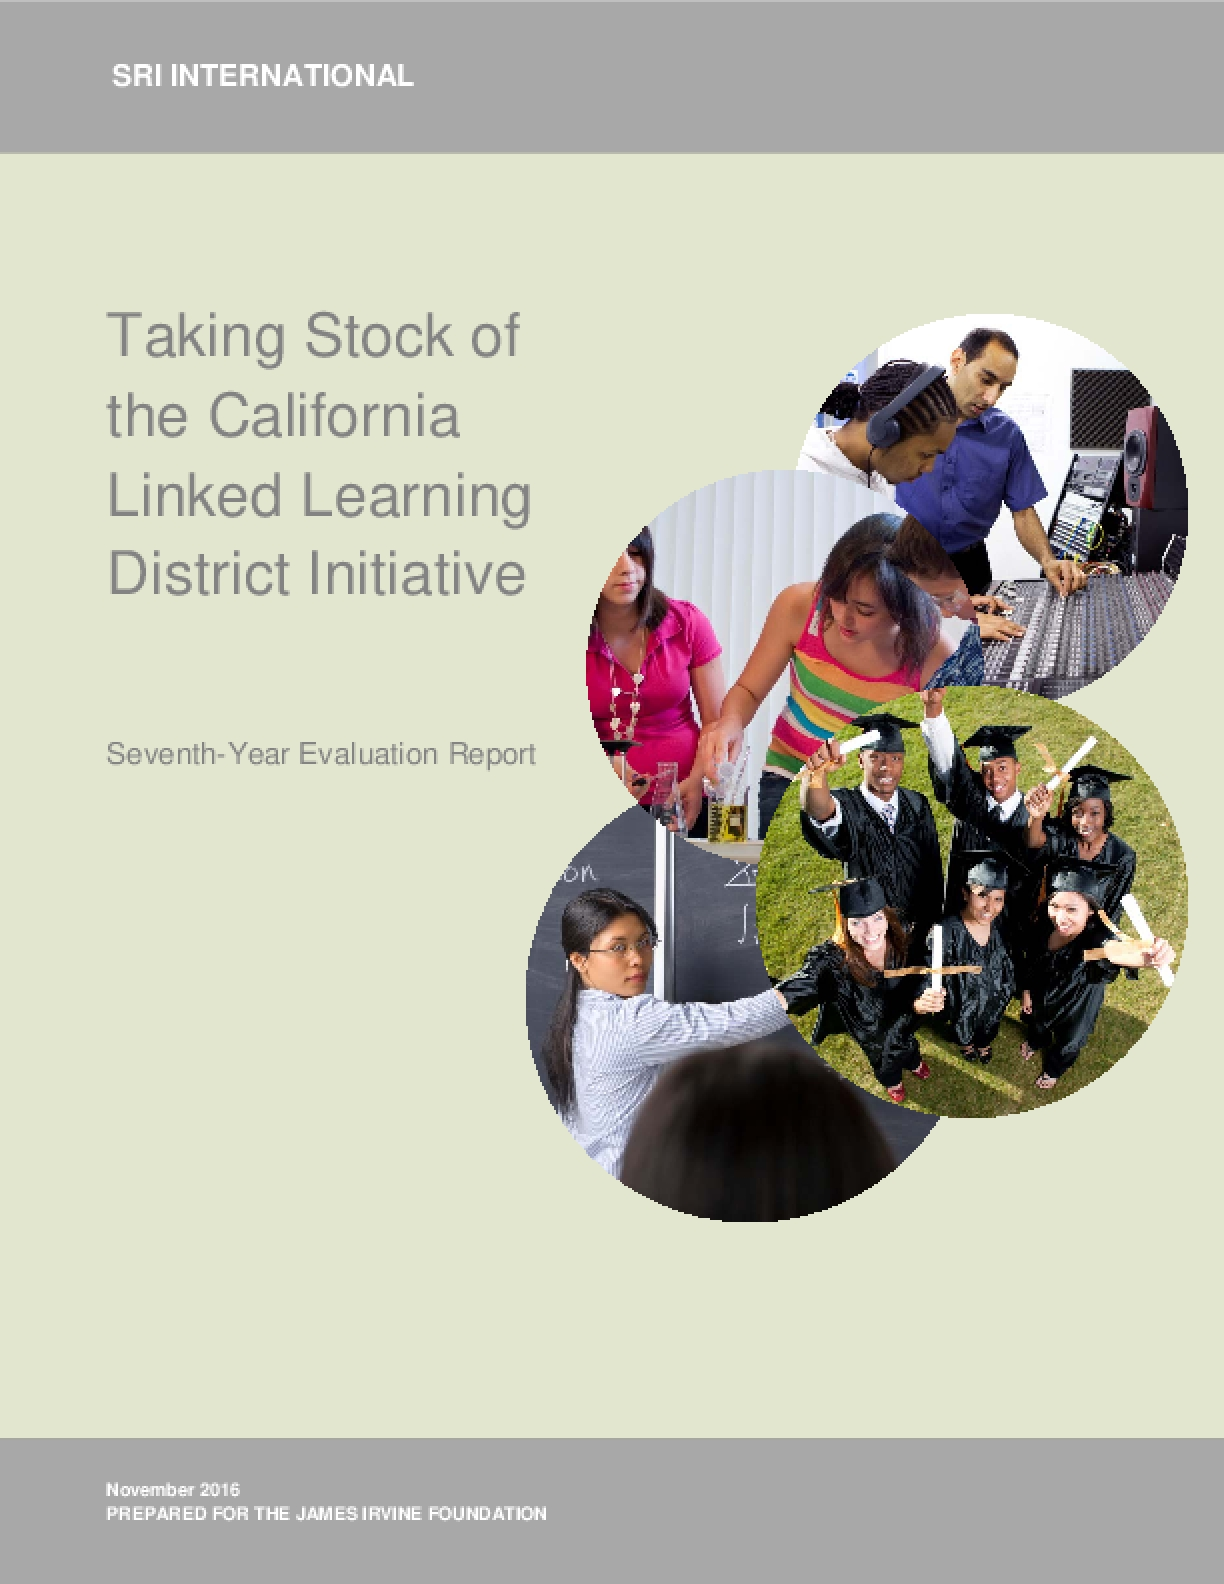 Taking Stock of the California Linked Learning District Initiative: Seventh-Year Evaluation Report